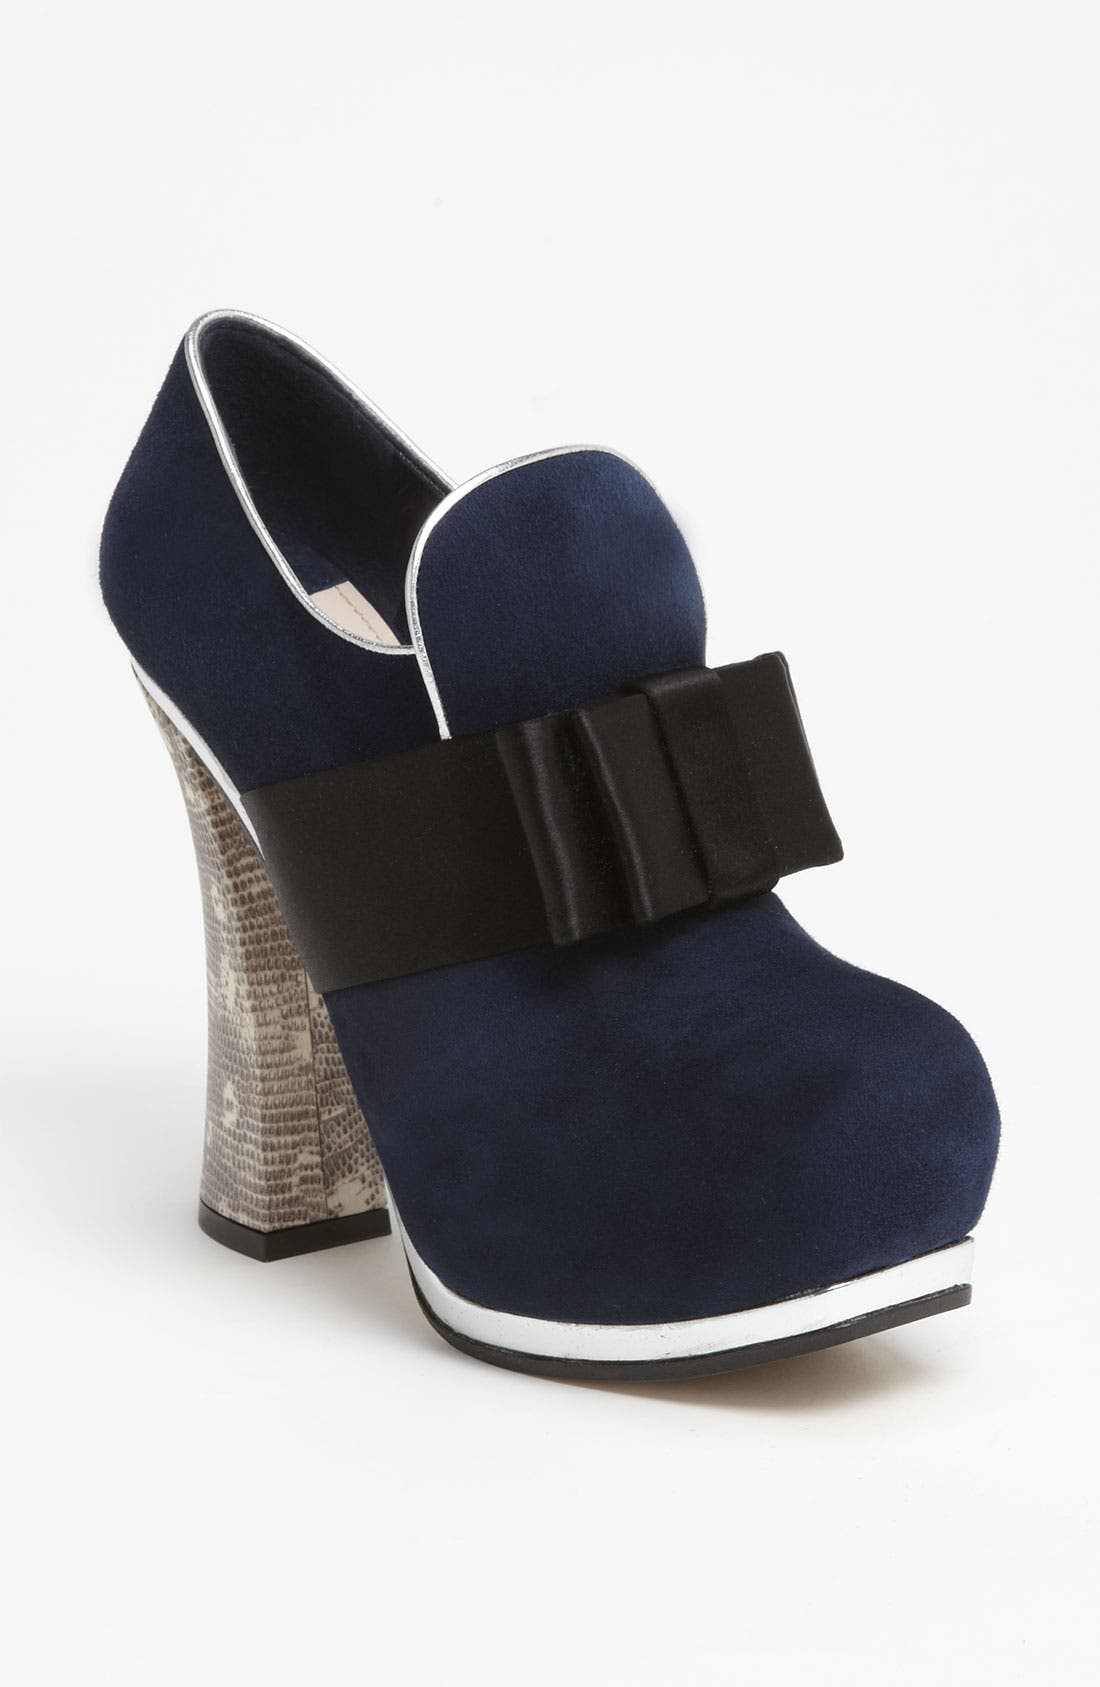 Alternate Image 1 Selected - Miu Miu Bow Front Platform Bootie